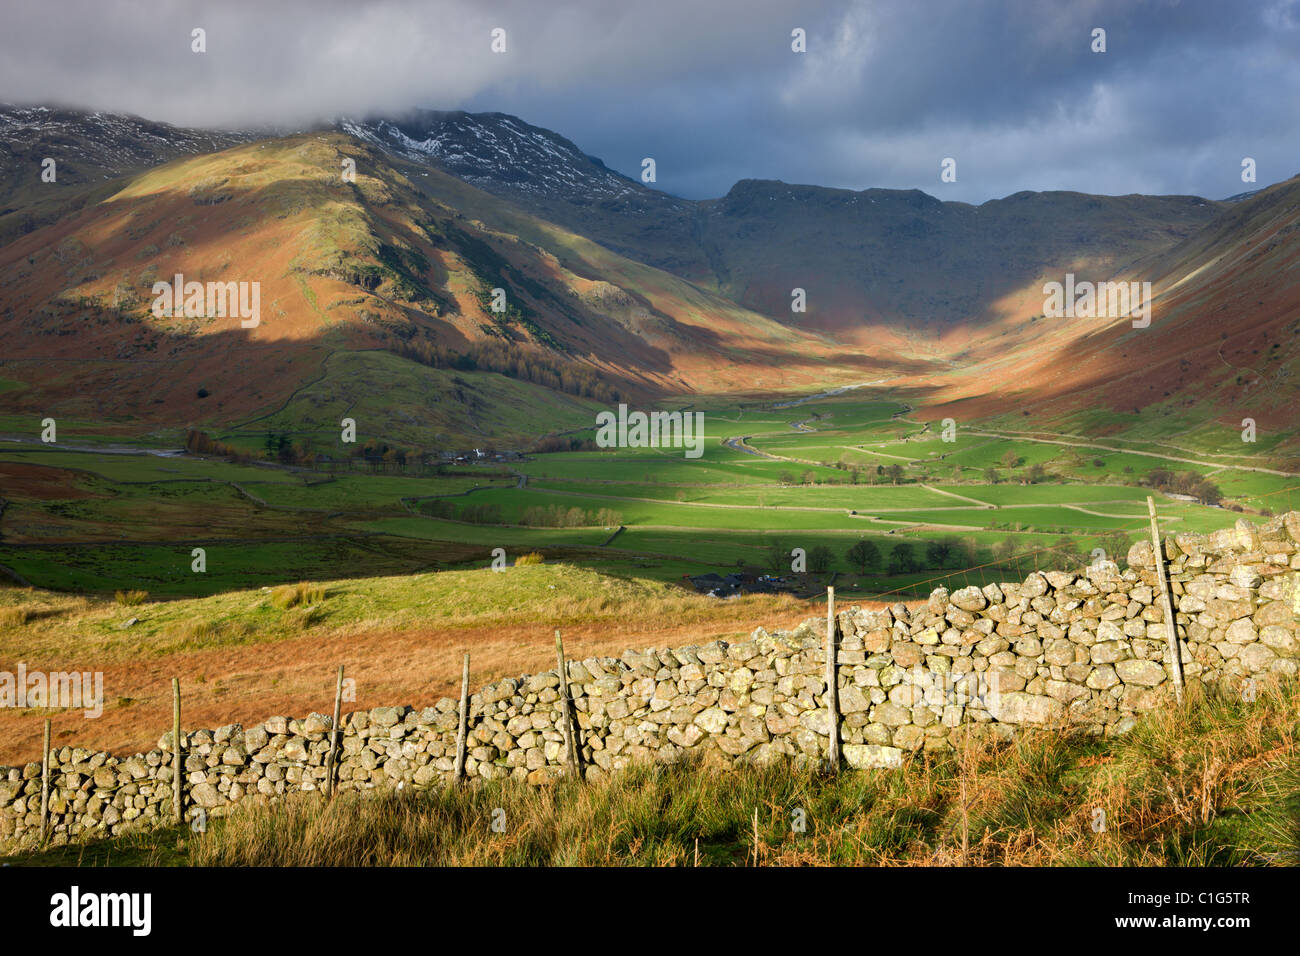 Morning sunlight in the Mickleden Valley and on the Langdale Fell, Lake District National Park, Cumbria, England. - Stock Image